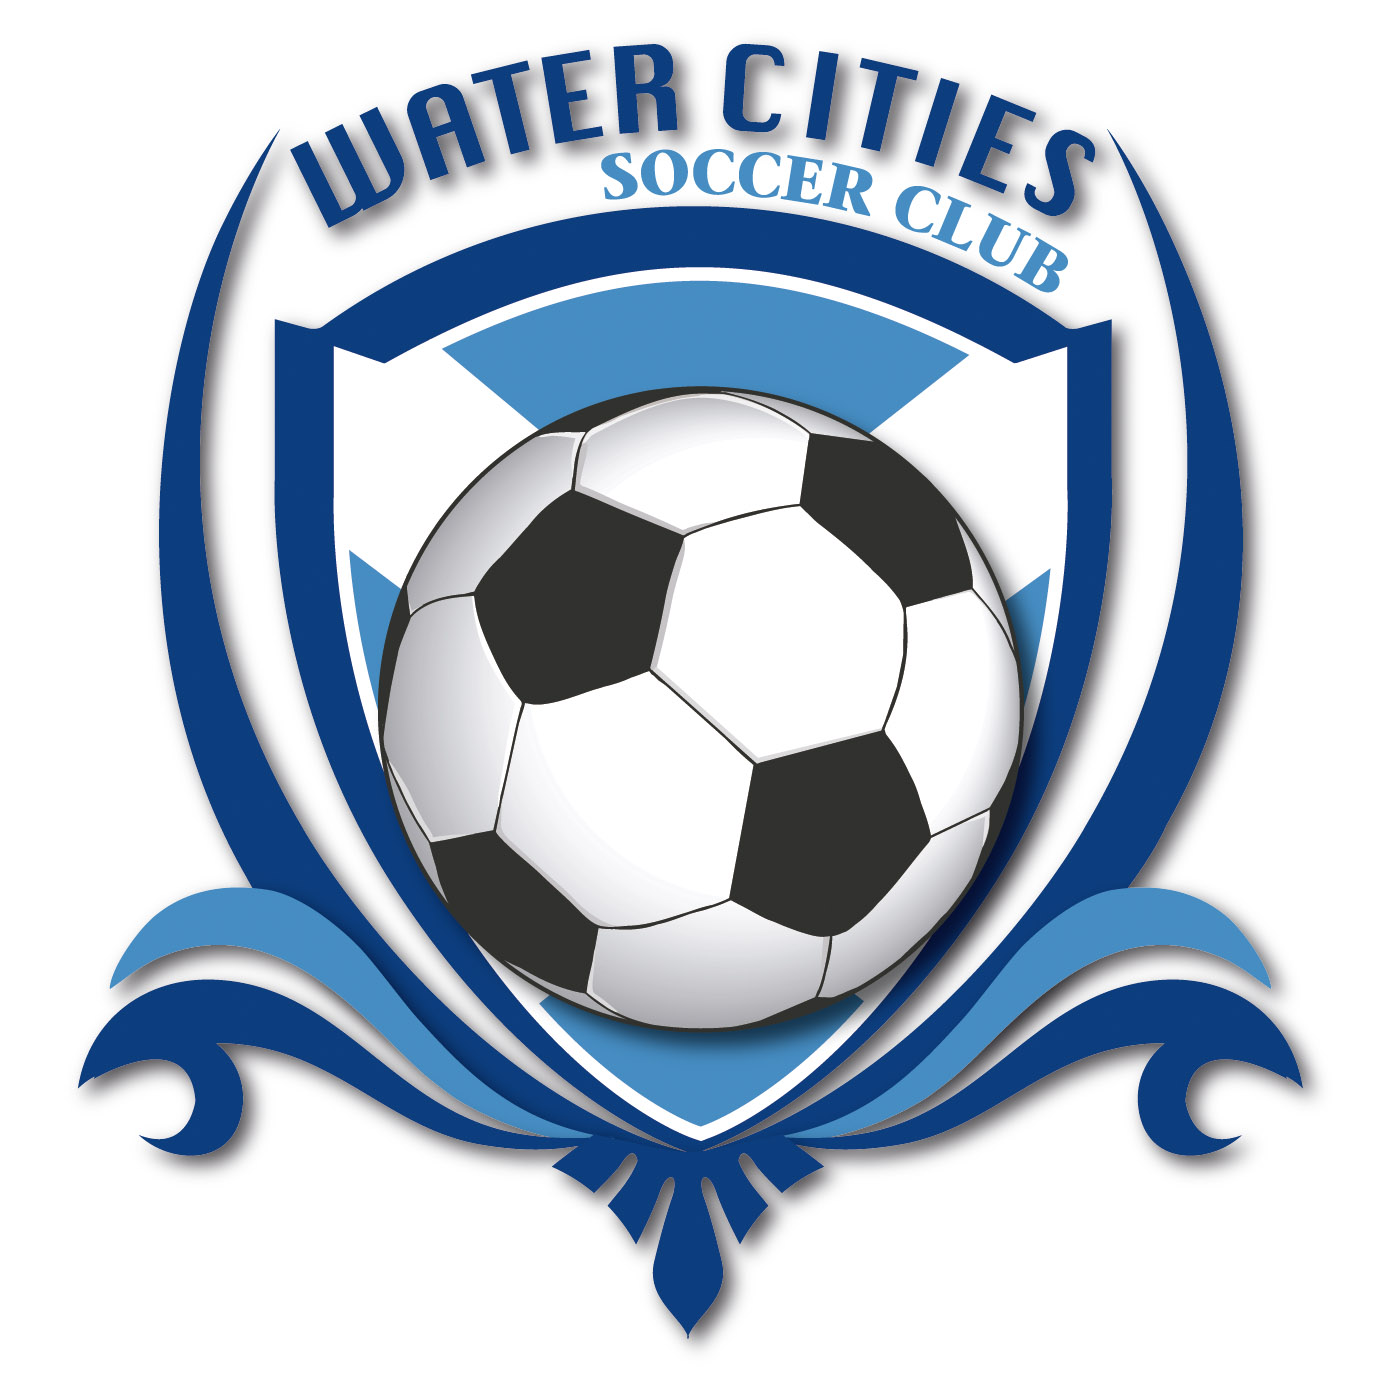 Water Cities Soccer Club Scholarship Program